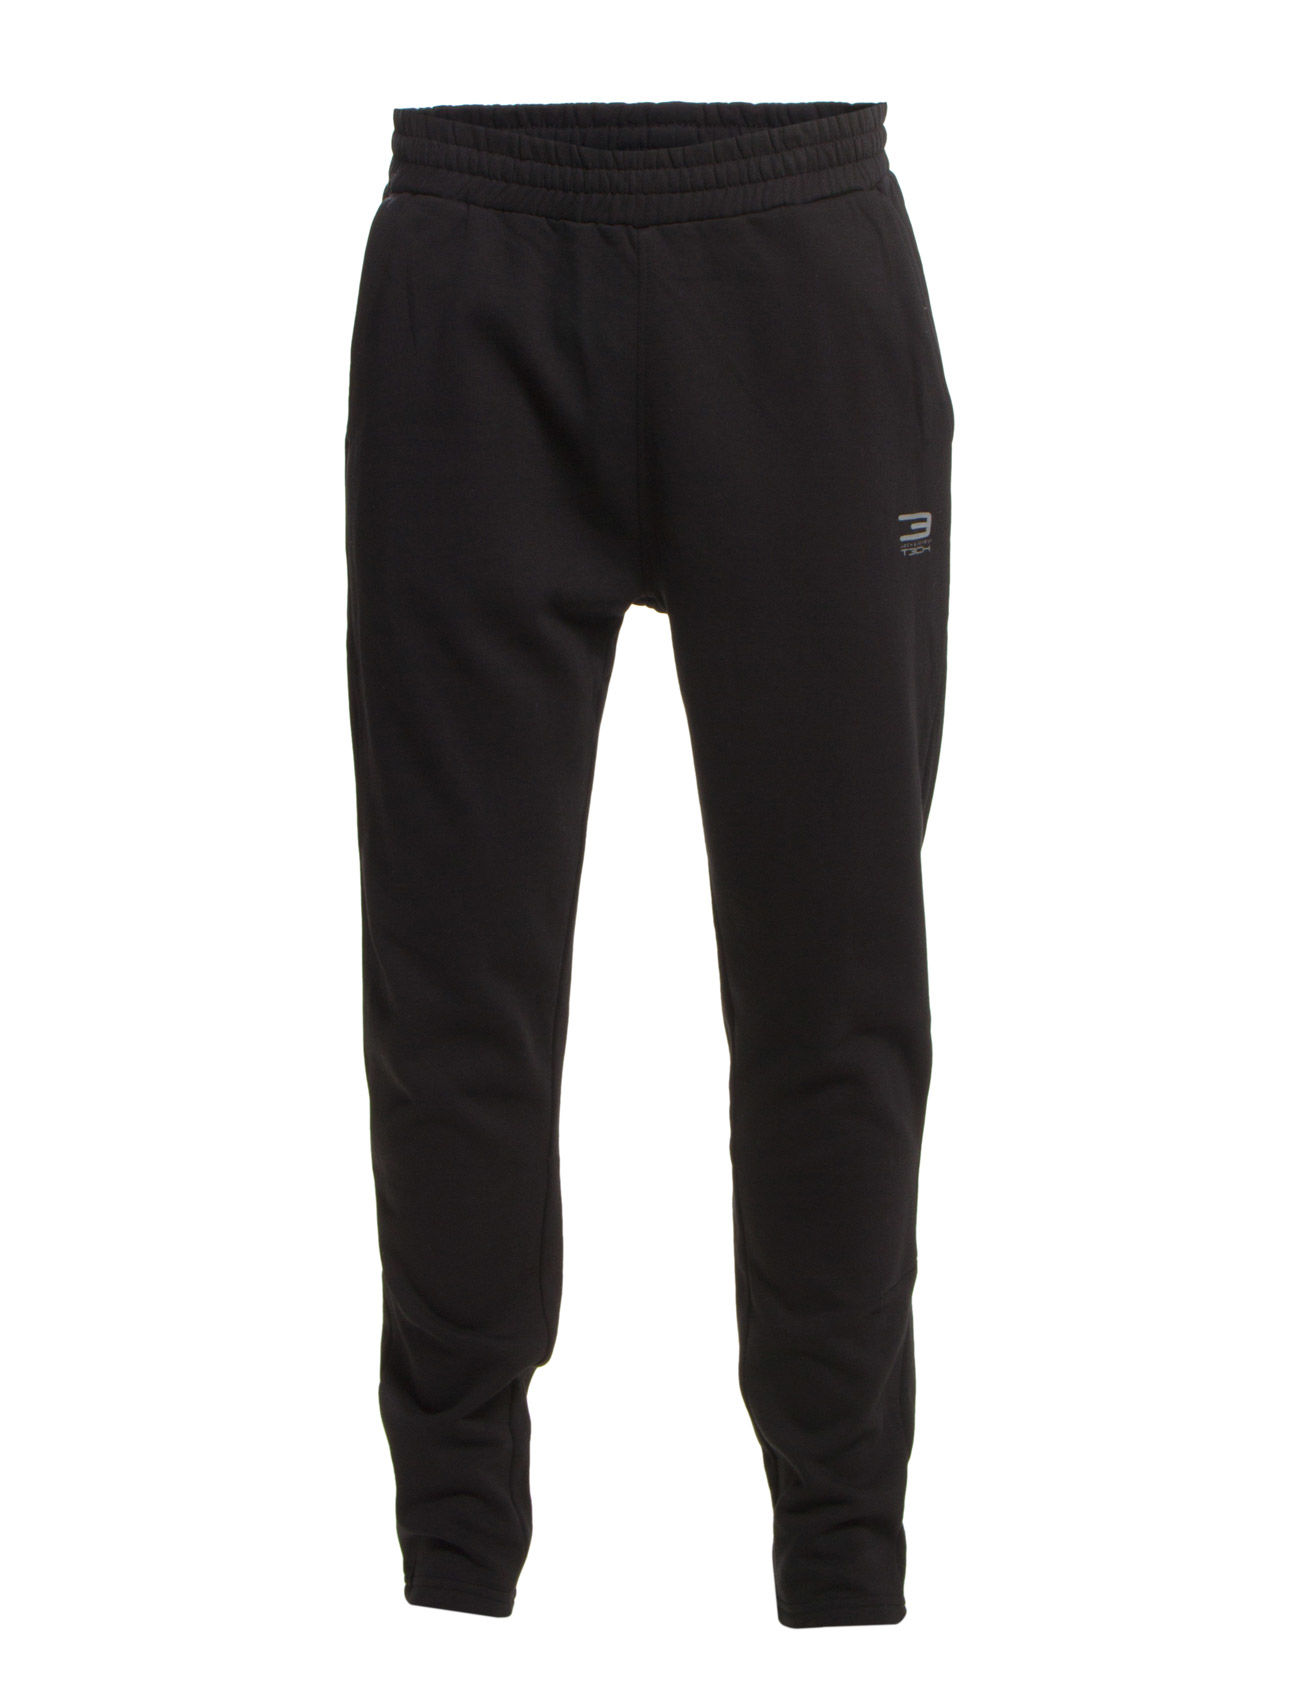 Jjtslider Sweat Pants* Noos Jack & Jones Tech Joggingbukser til Herrer i Sort